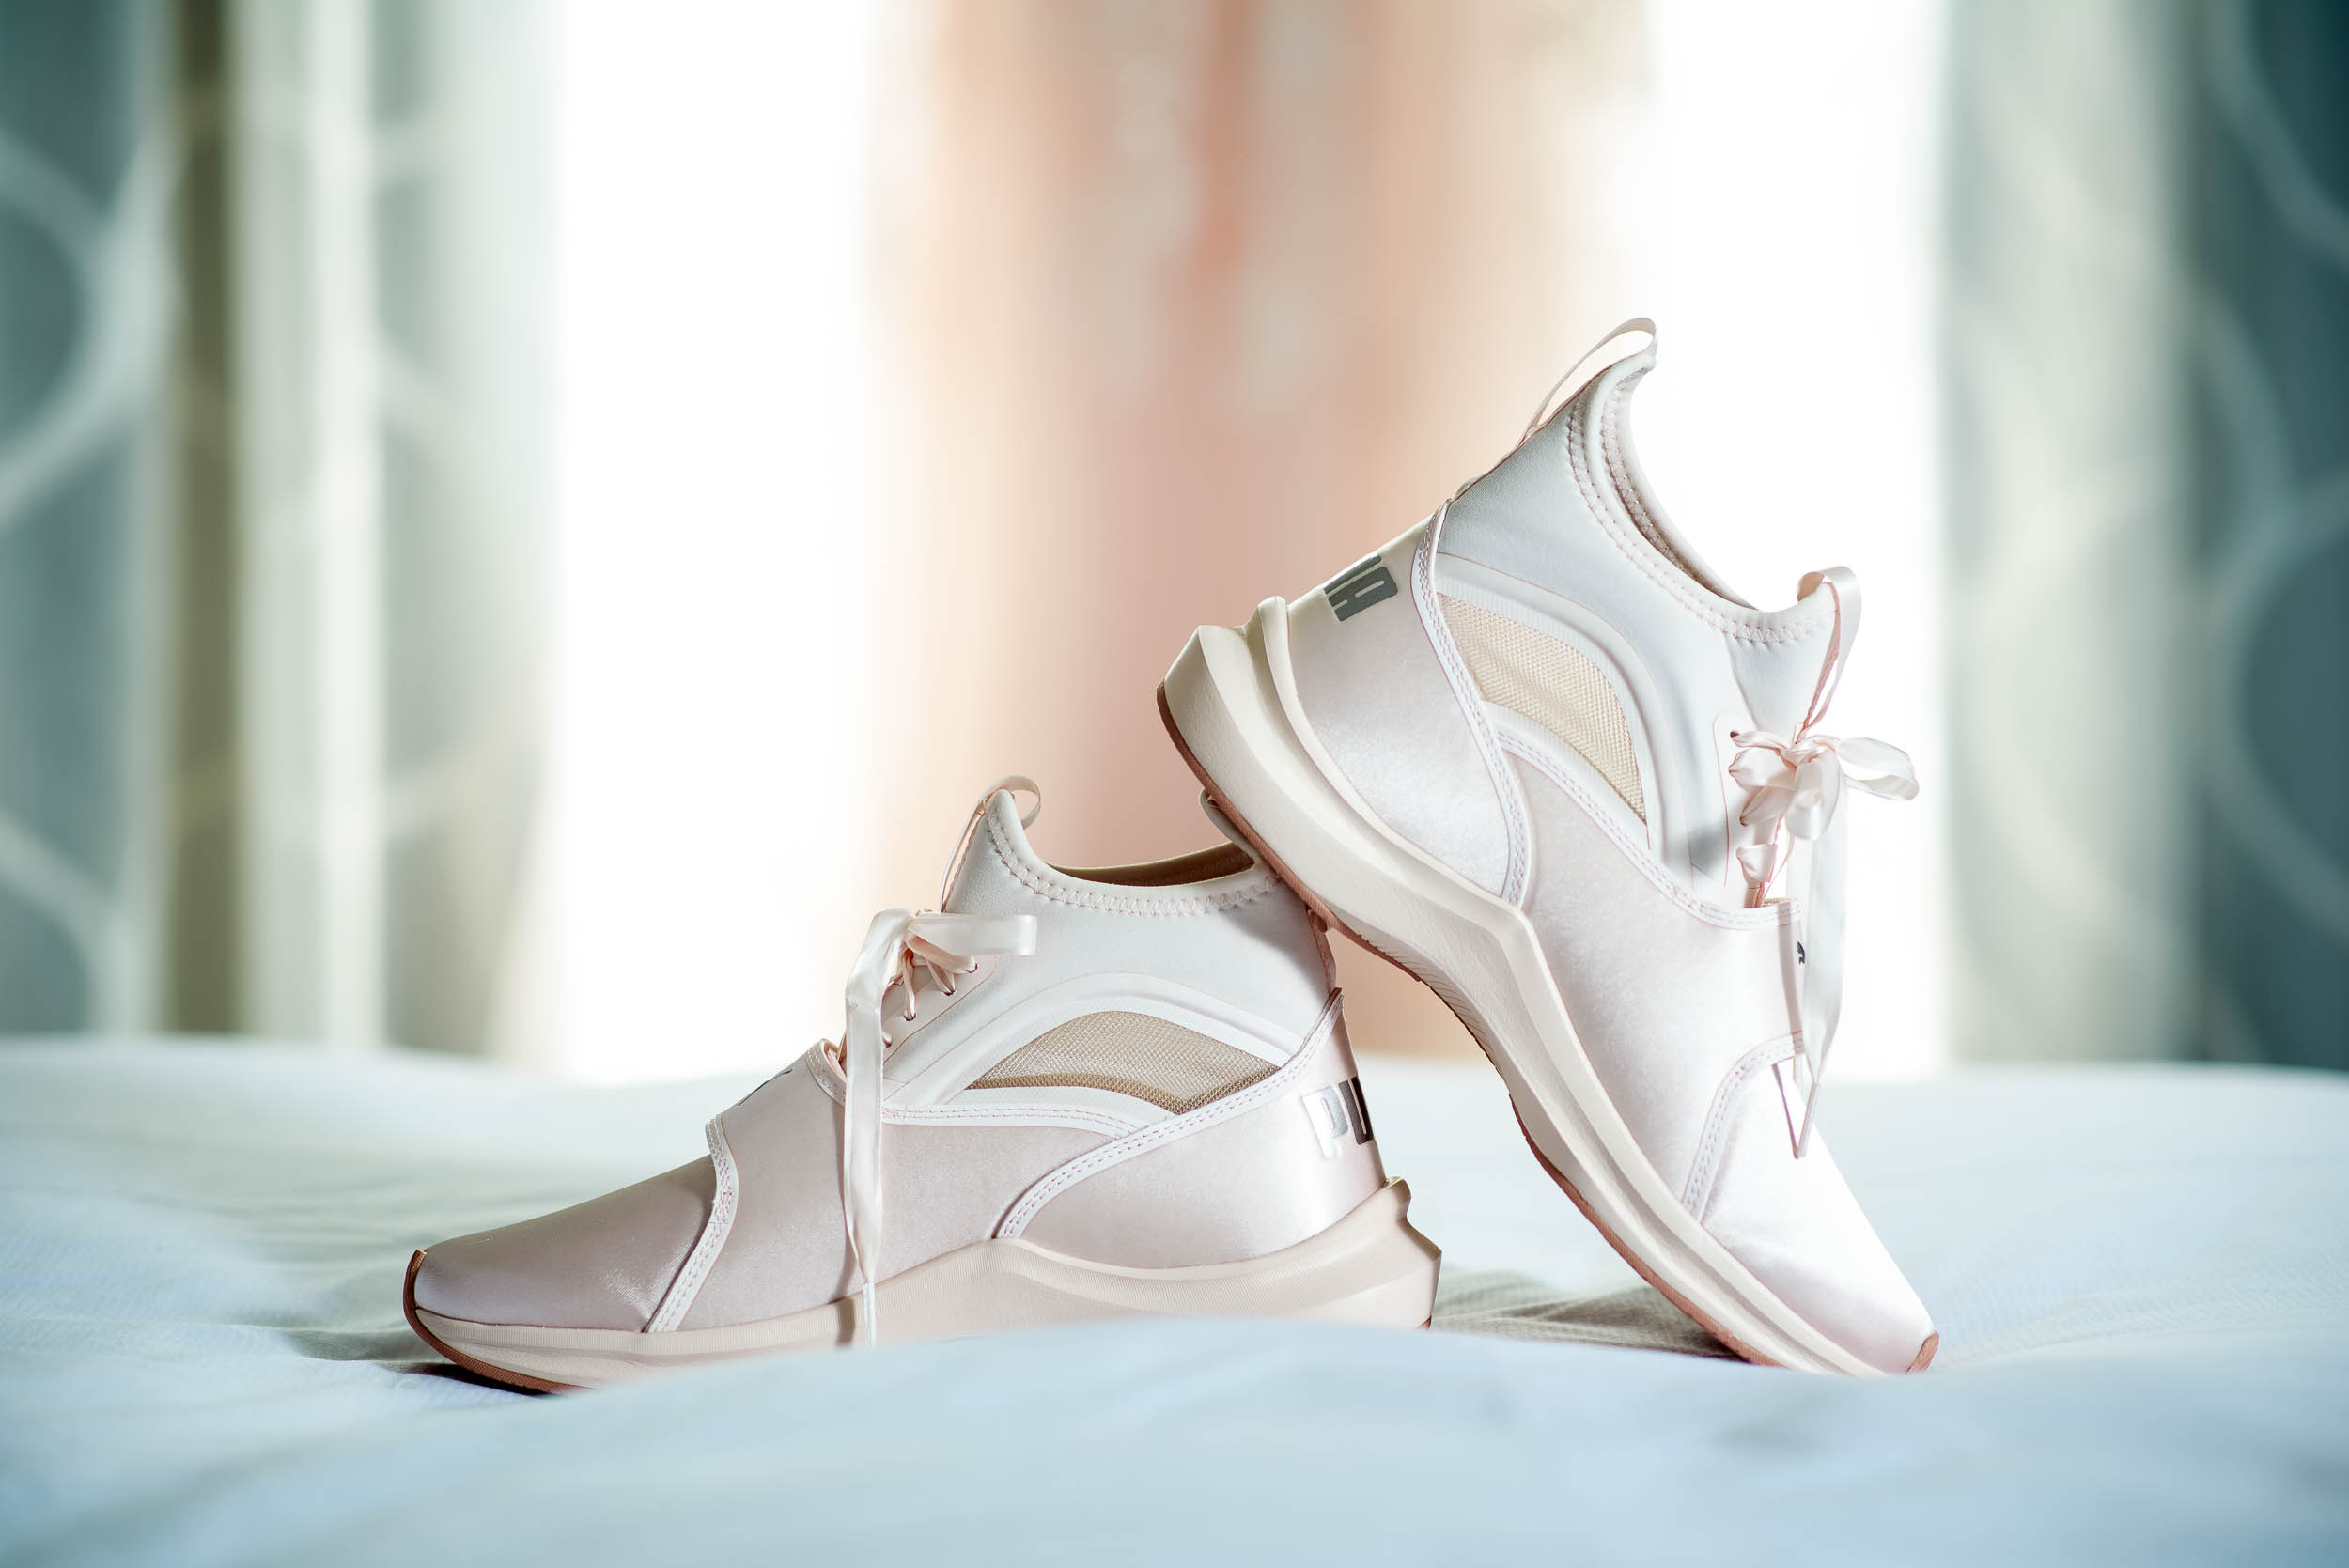 Bride's Puma wedding day shoes during an Independence Grove Chicago wedding.